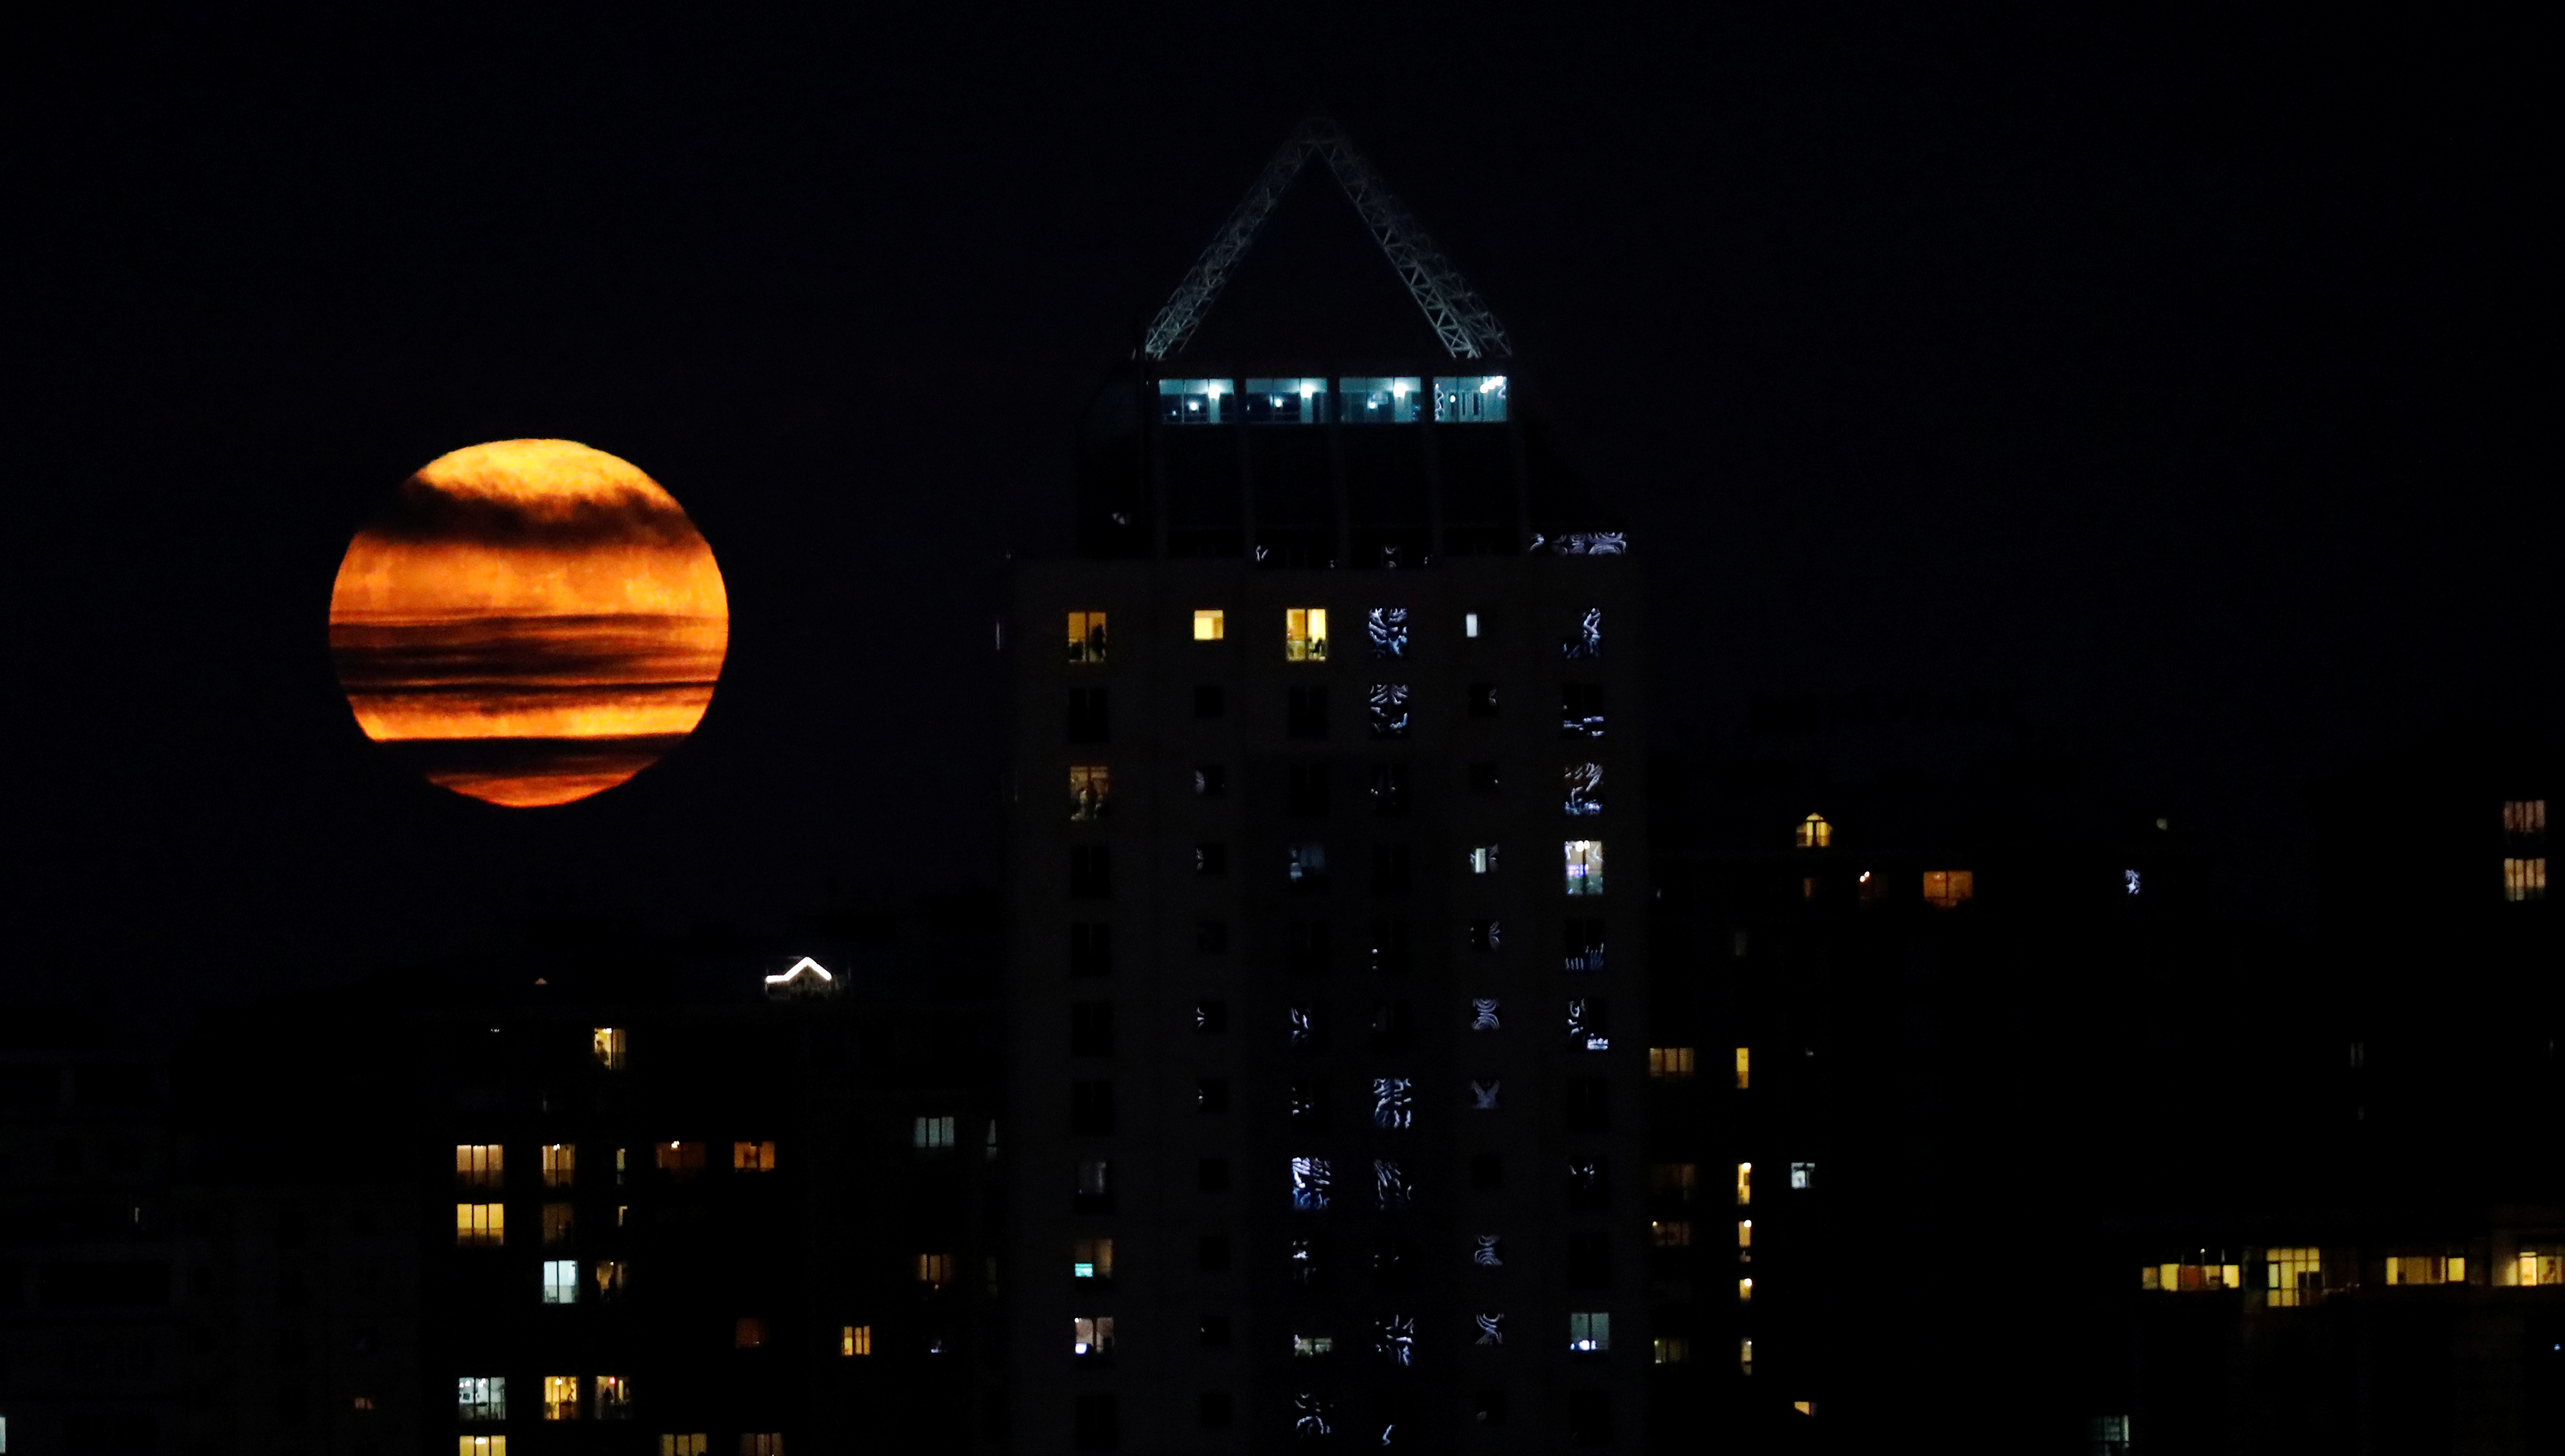 The supermoon is seen in the nighttime sky in Istanbul, Turkey on Nov. 14. Photo by Umit Bektas/Reuters